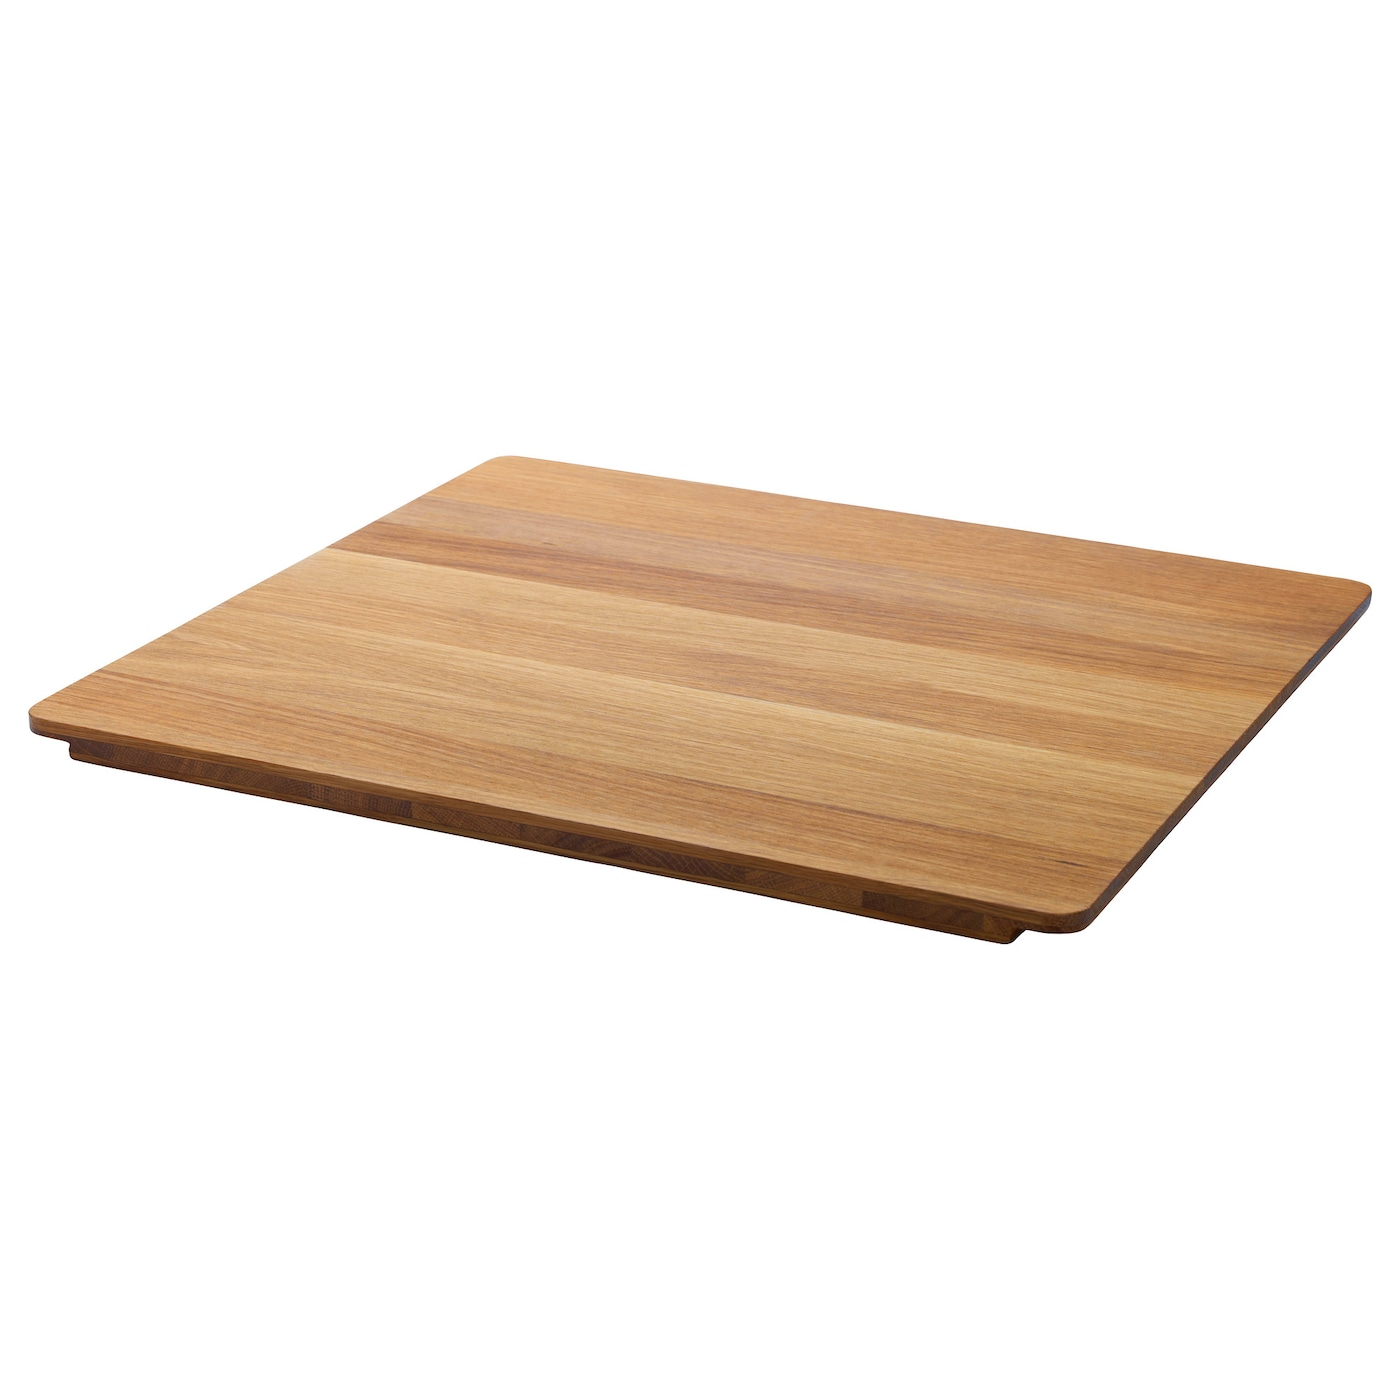 IKEA NORRSJÖN chopping board The wood surface is durable yet also gentle on your knives.